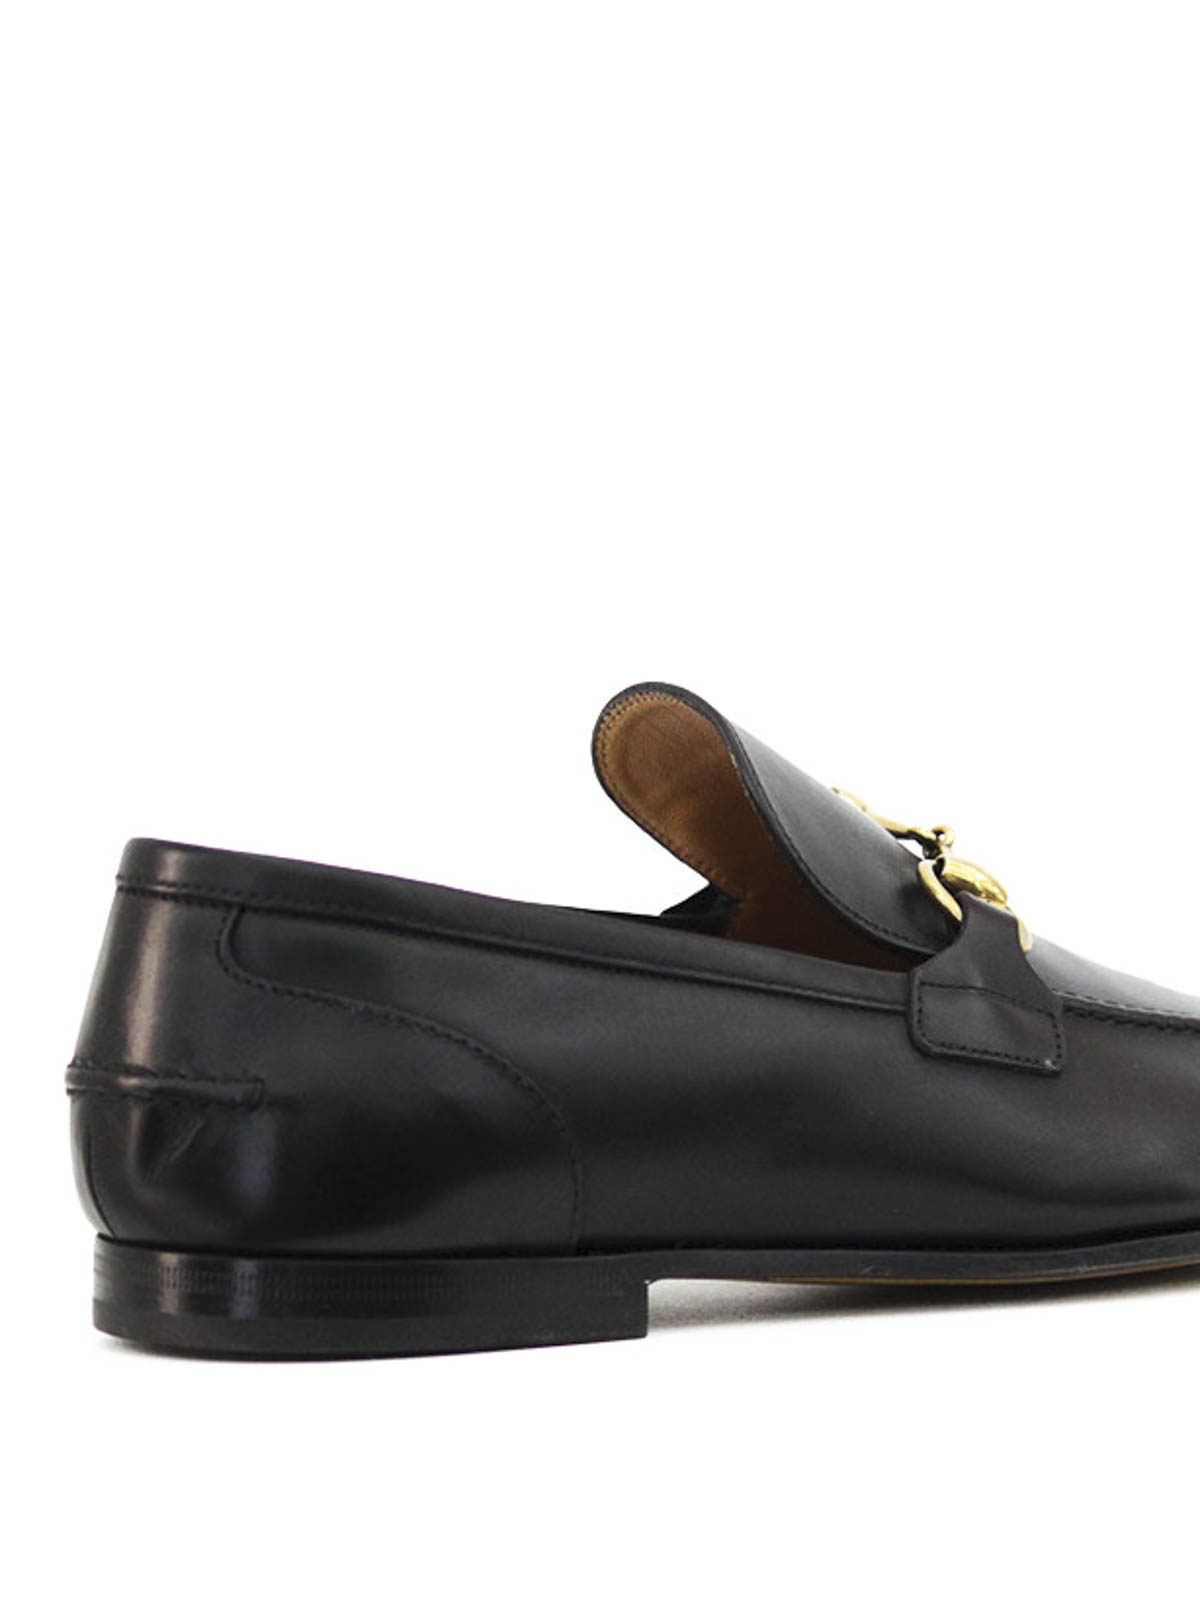 35deff274a1 Gucci - Leather horsebit loafers - Loafers   Slippers - 406994 BLM00 ...